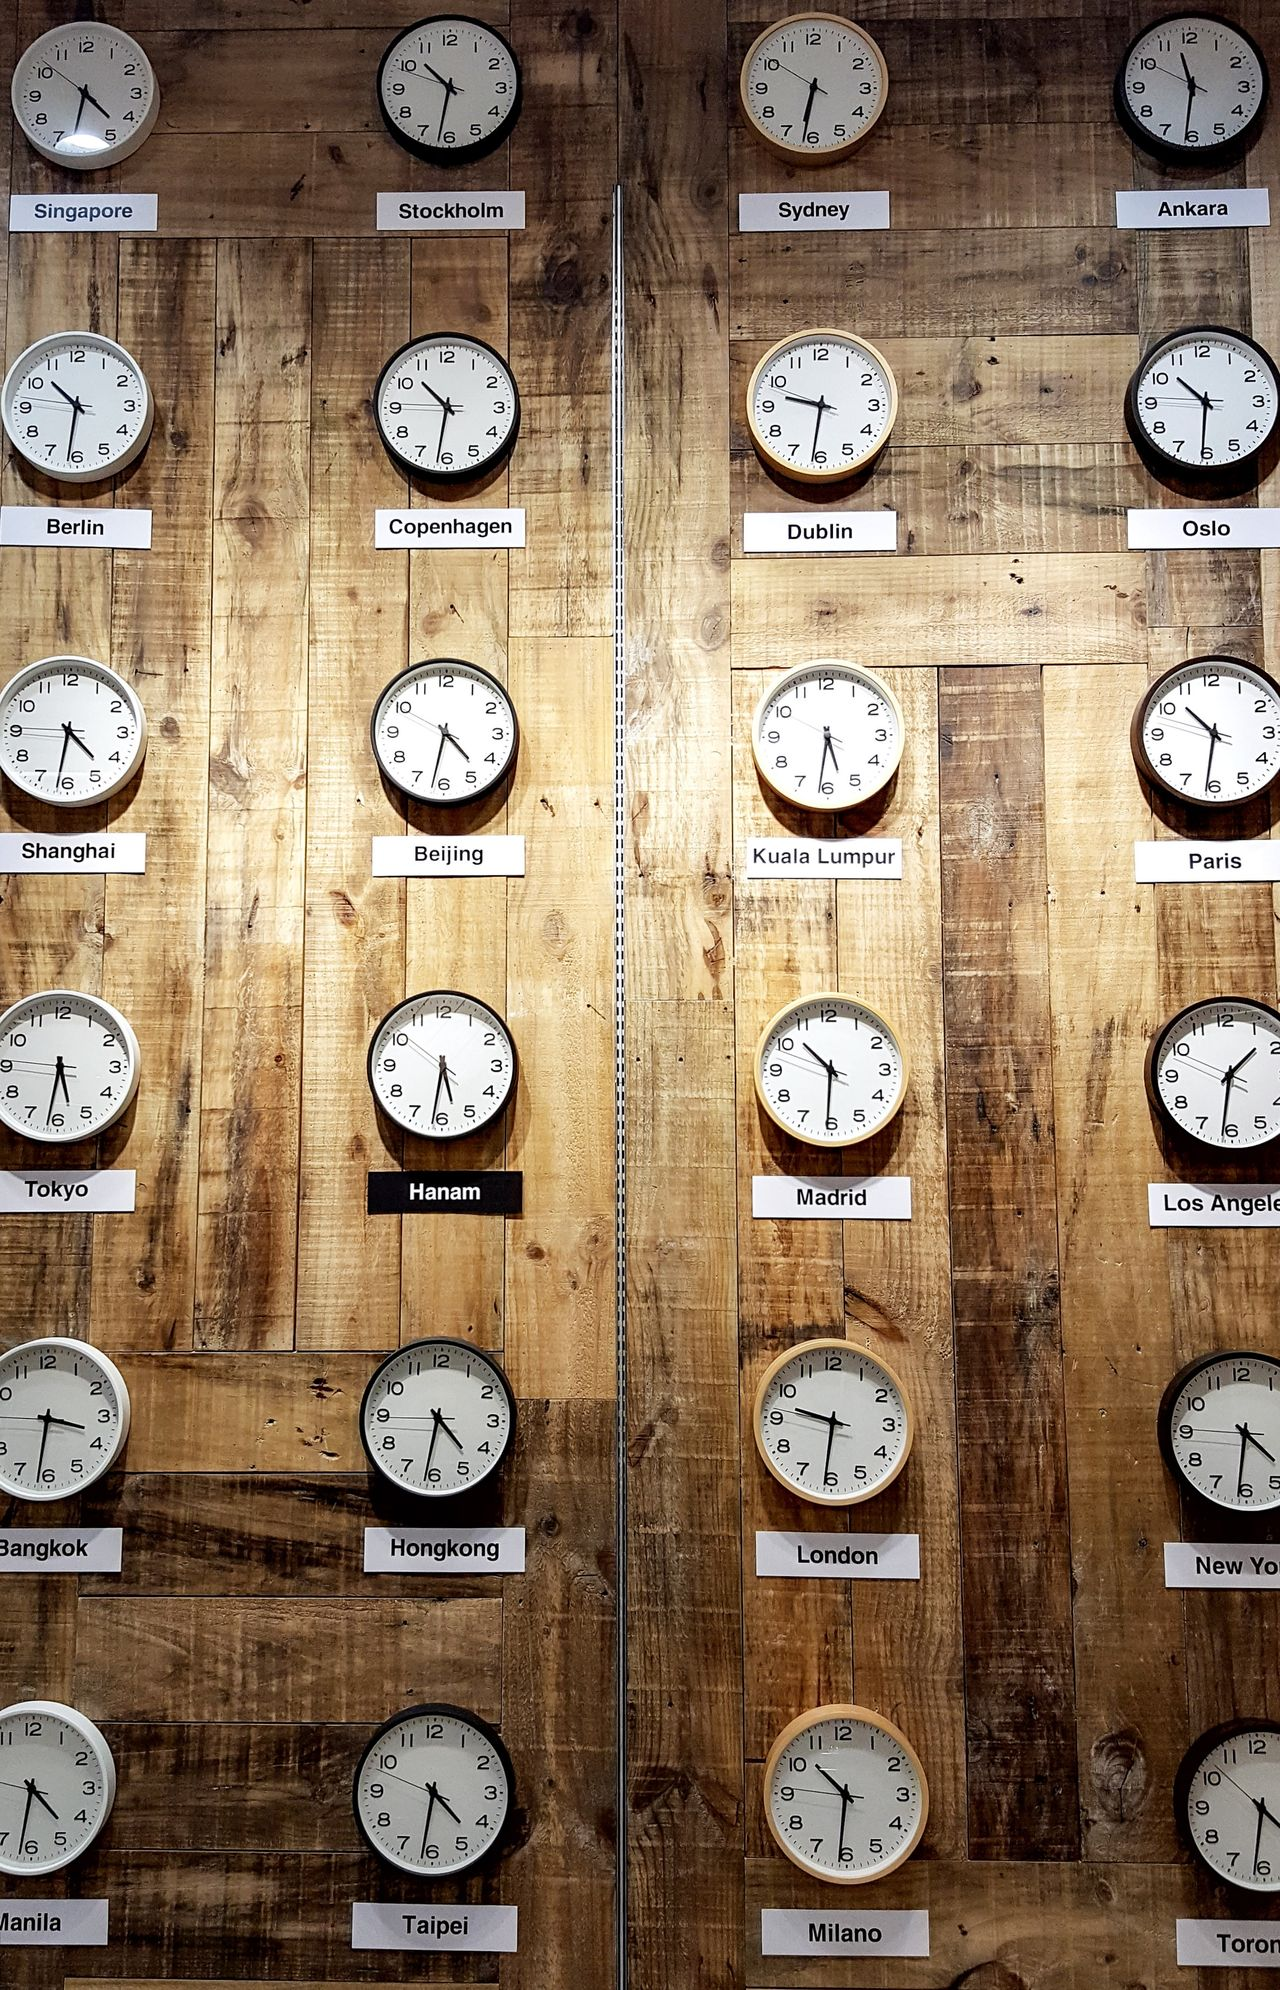 Clock Clocks Clock On The Wall Time Time For A Race Timelapse Time Travel Feeling Inspired Getting Inspired Backgrounds Full Frame History Symmetry In A Row Arrangement Group Of Objects Geometric Shape Order No People TakeoverContrast Colors and patterns